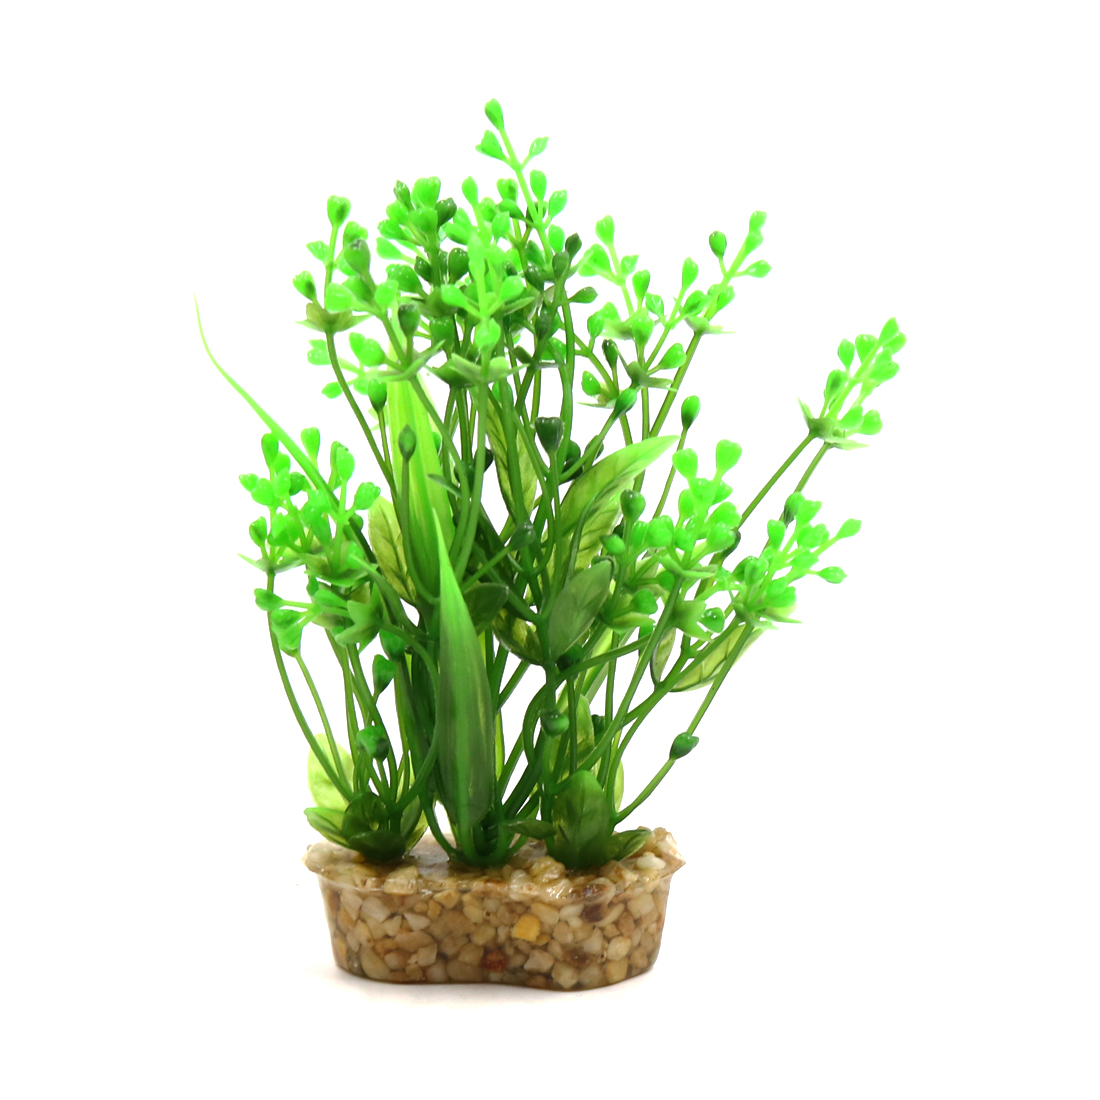 4 Inch Green Plastic Mini Plant Aquarium Terrarium Reptiles Decorative Plants Walmart Canada